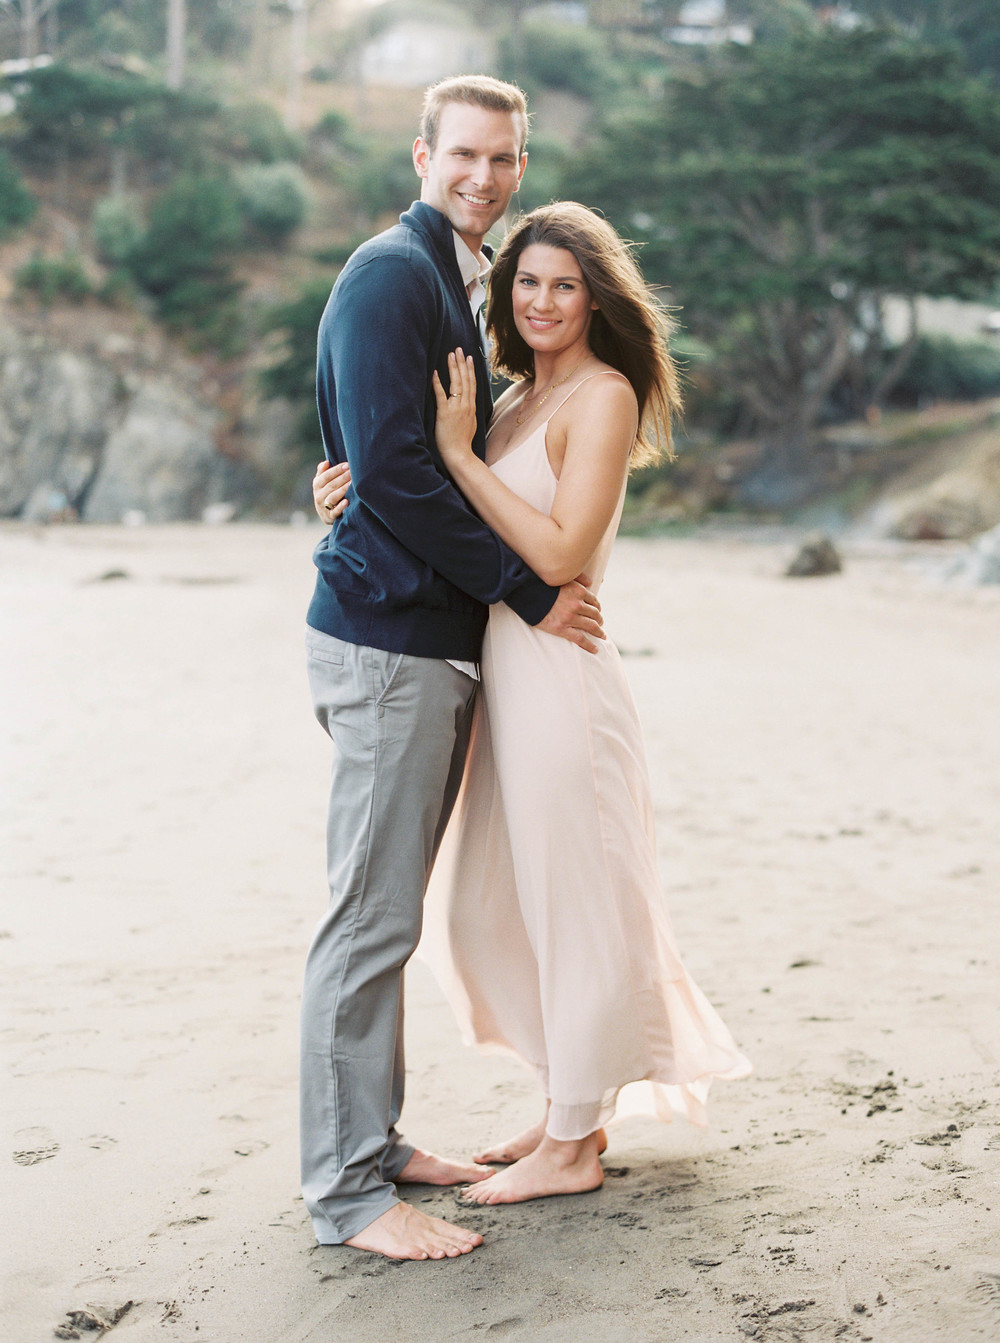 Meghan Mehan Photography - Fine Art Film Wedding Photography - San Francisco | Napa | Sonoma | Big Sur | Santa Barbara - 086.jpg